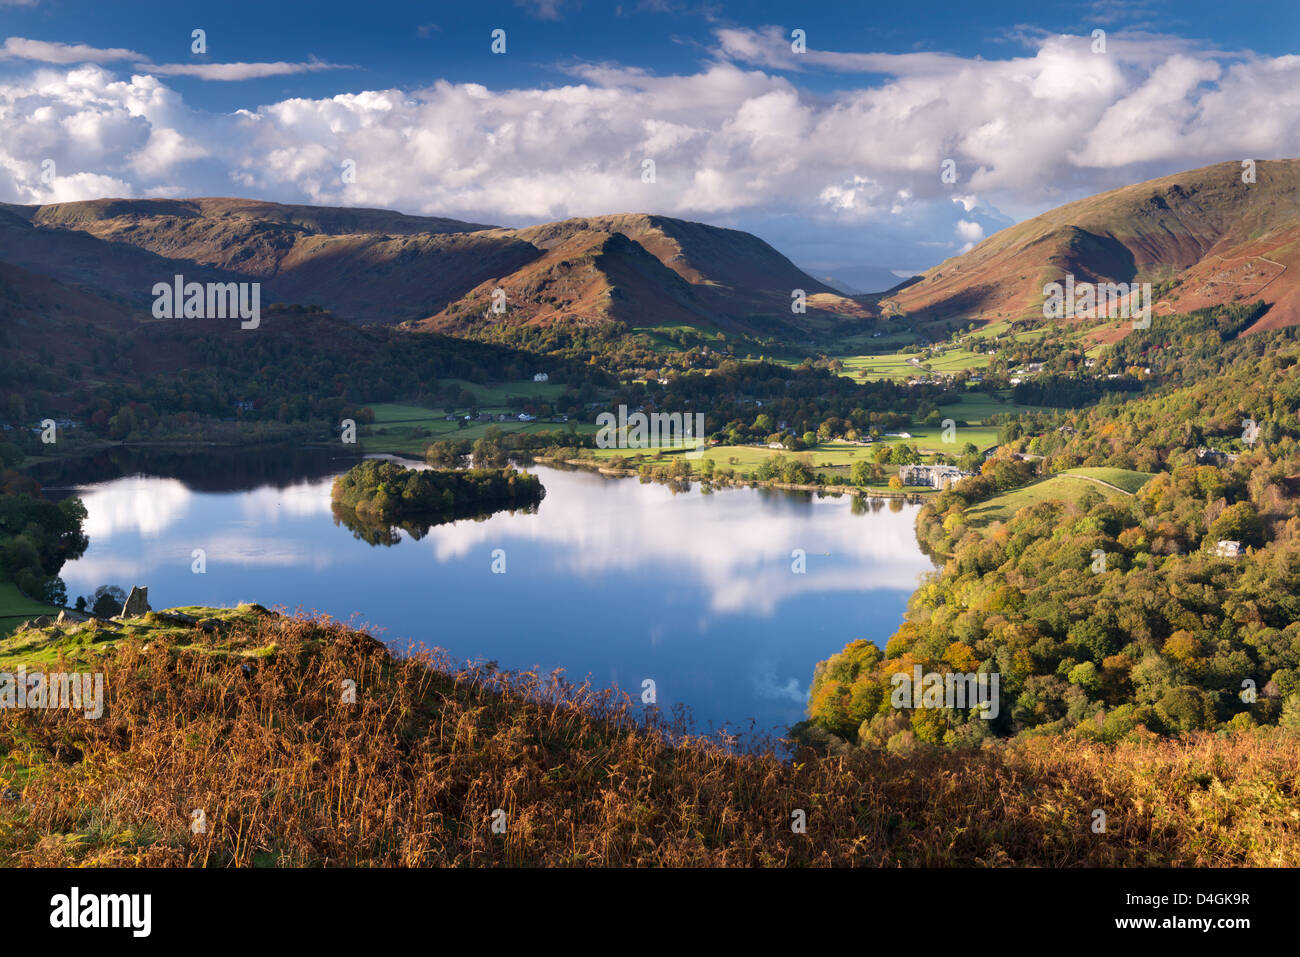 Lake Grasmere on a beautiful autumnal afternoon, Lake District, Cumbria, England. Autumn (October) 2012. - Stock Image